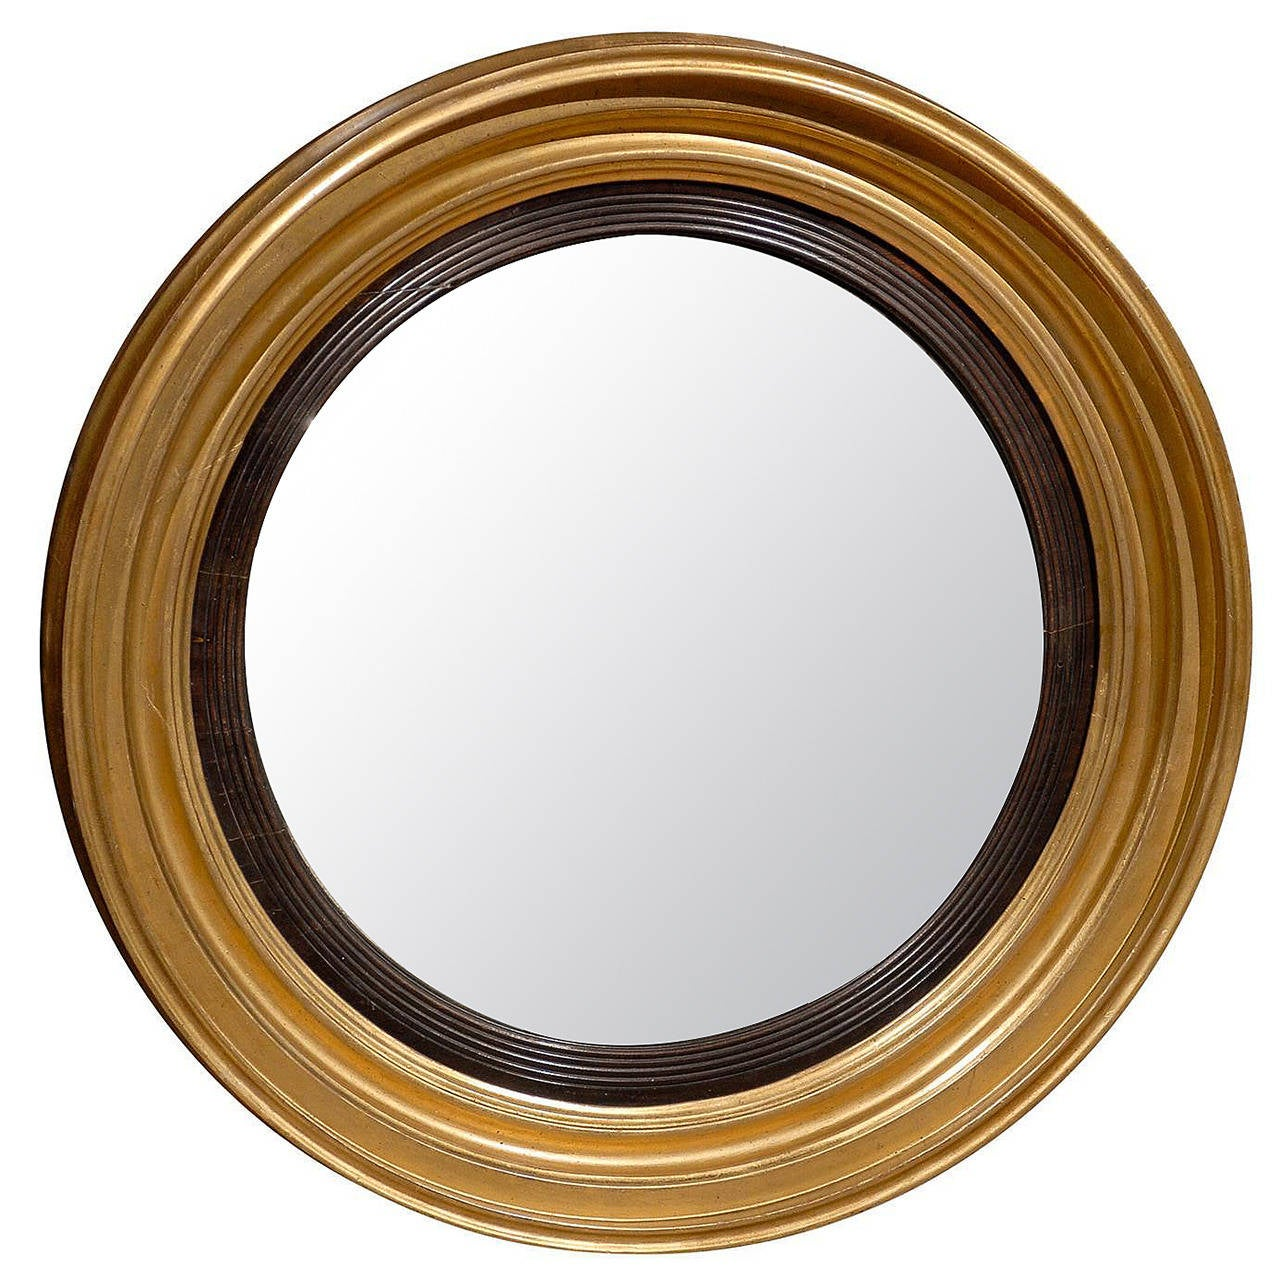 English convex mirror at 1stdibs for Convex mirror